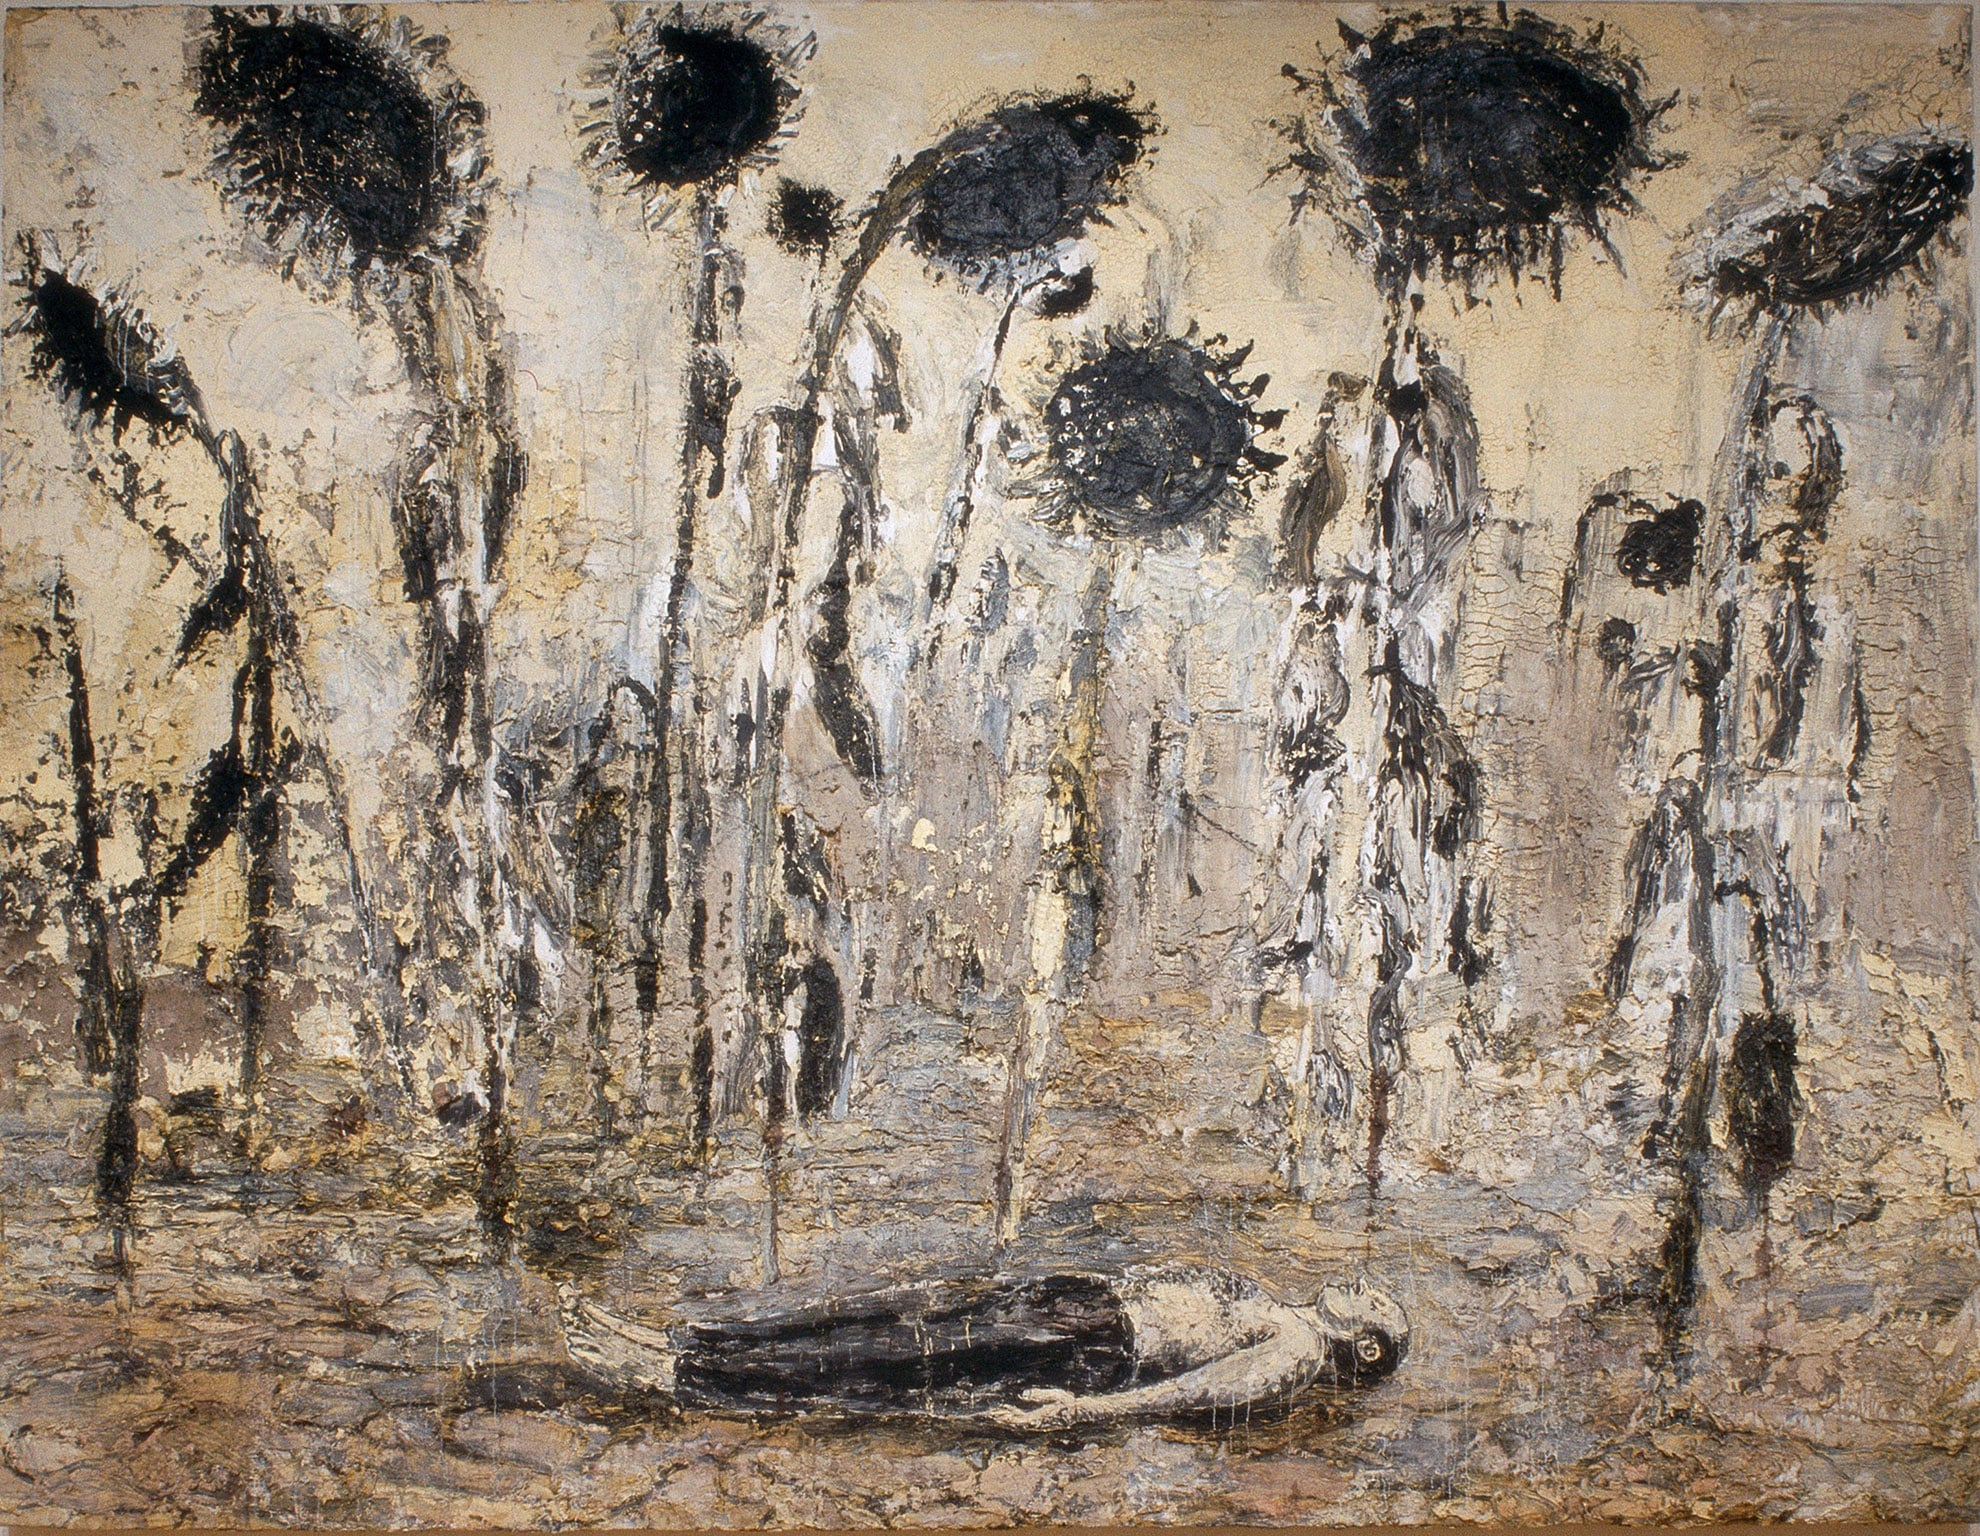 5. Anselm Kiefer, 27 Sept – 14 Dec 2014 - Royal Academy, London. Reduced price with National Art Pass